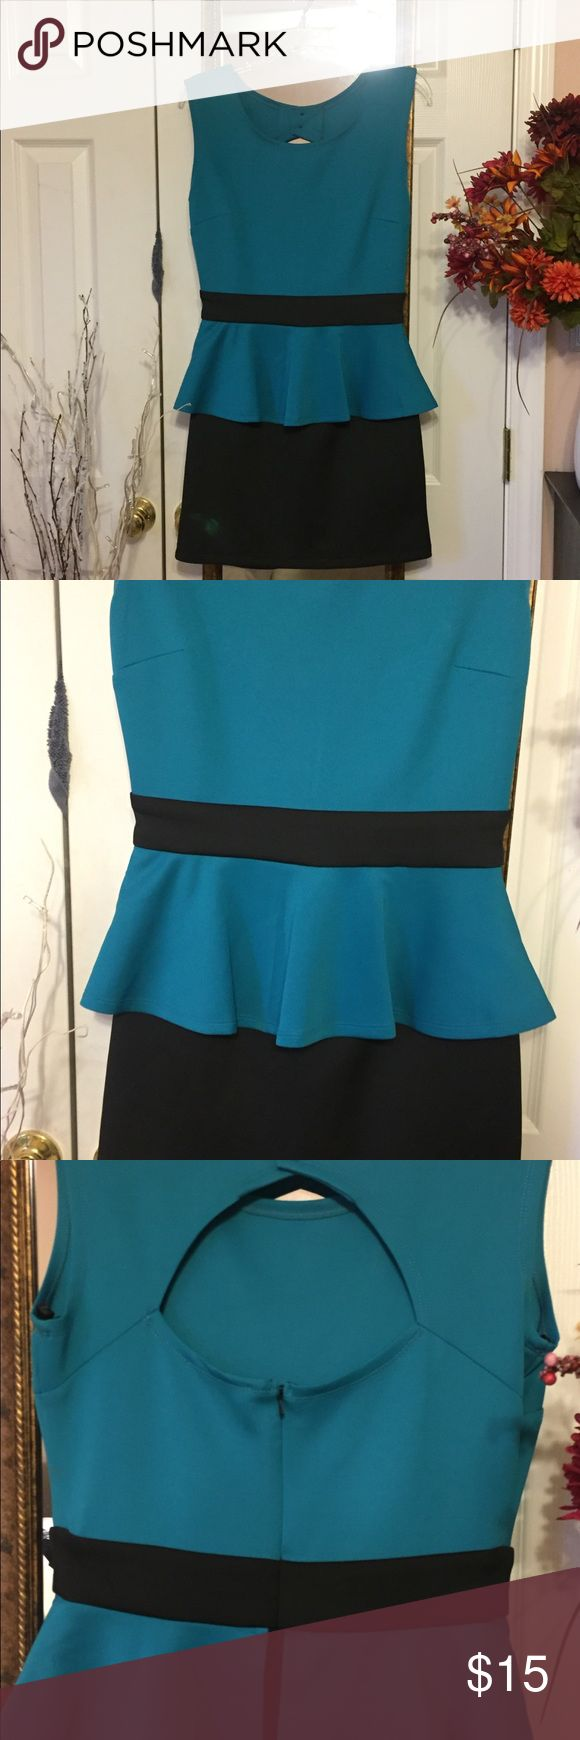 Blue & black peplum dress Peplum dress🎀 perfect for work events or just going out 🎀 only worn once so in great condition Dresses Midi